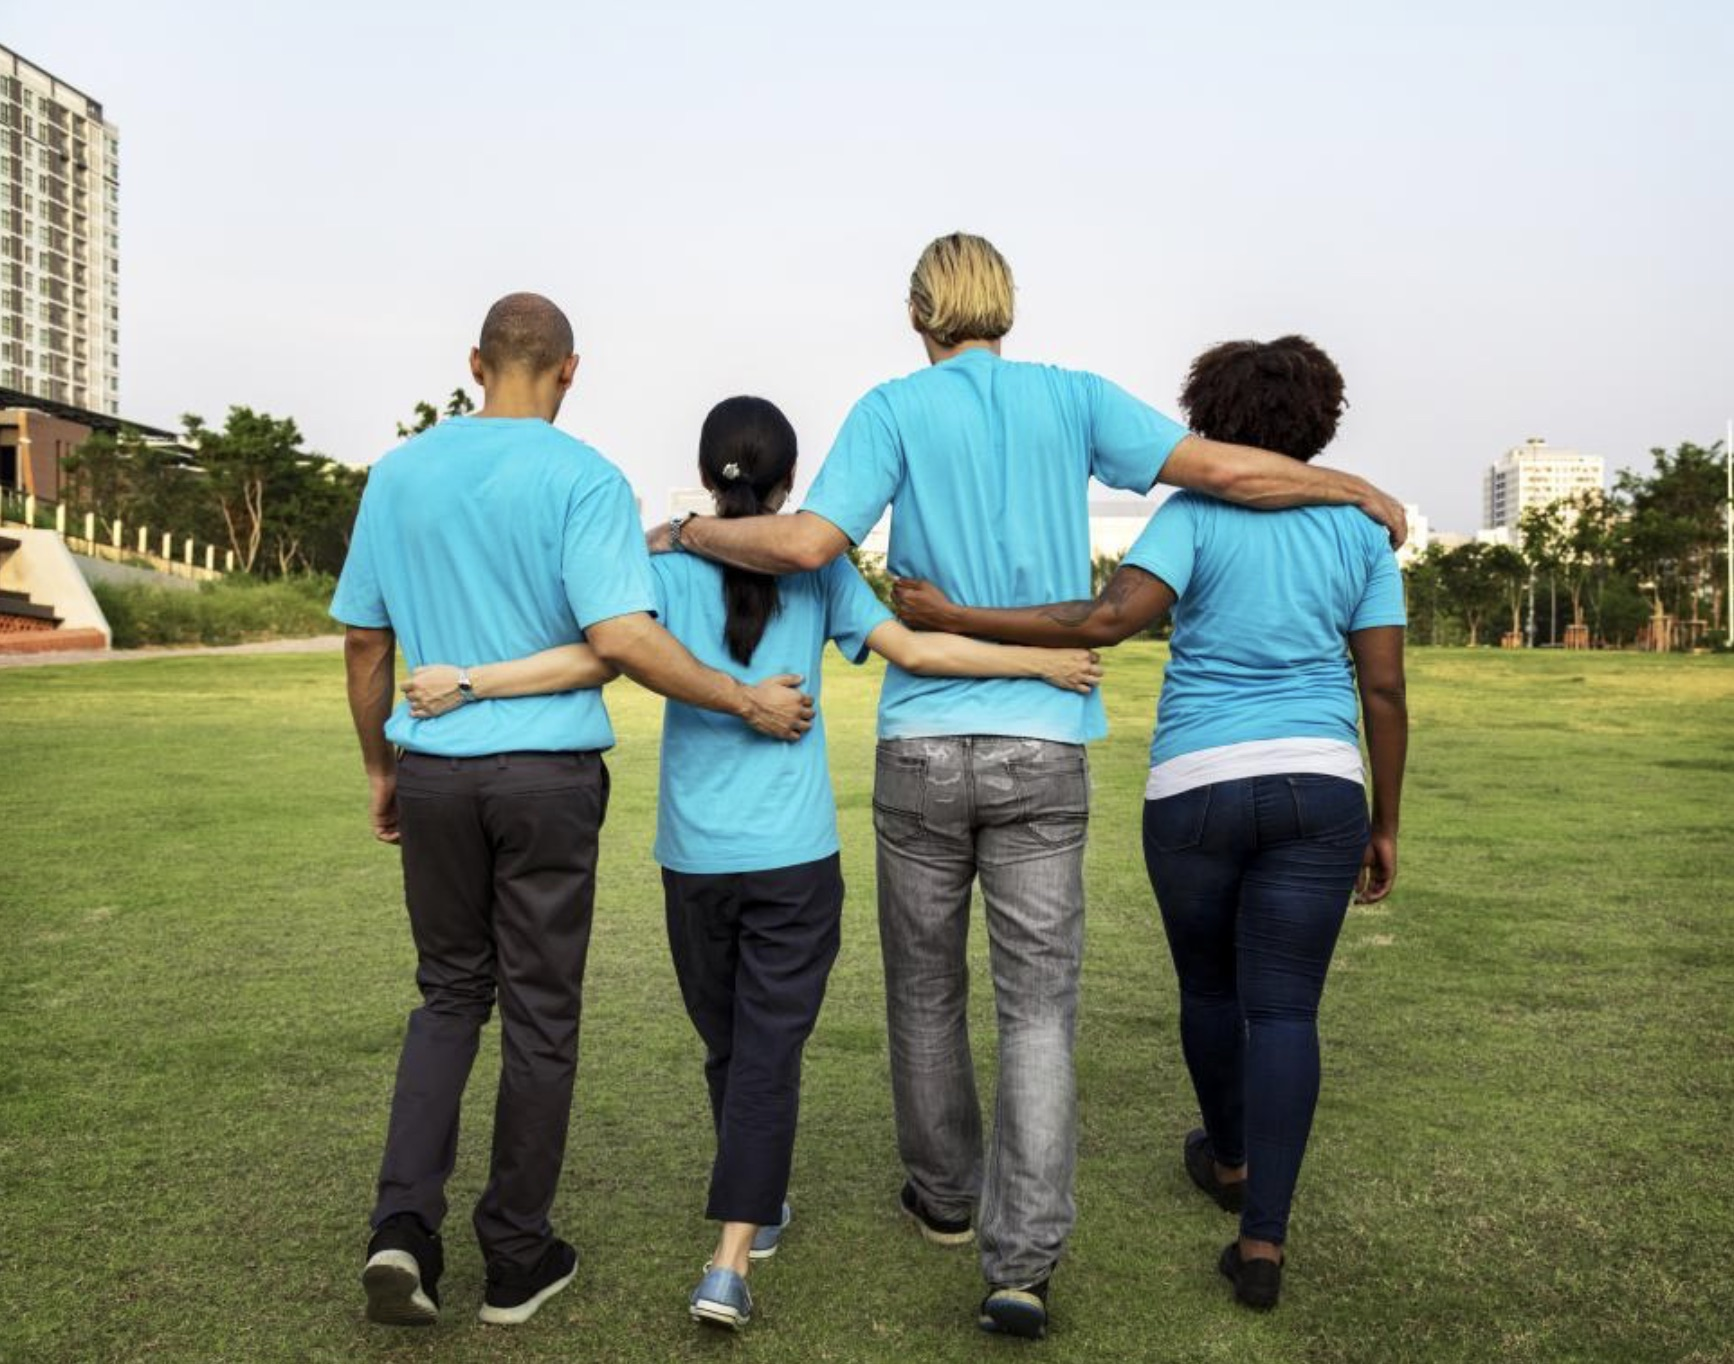 People with arms around each other wearing blue shirts in a field with backs to the camera.